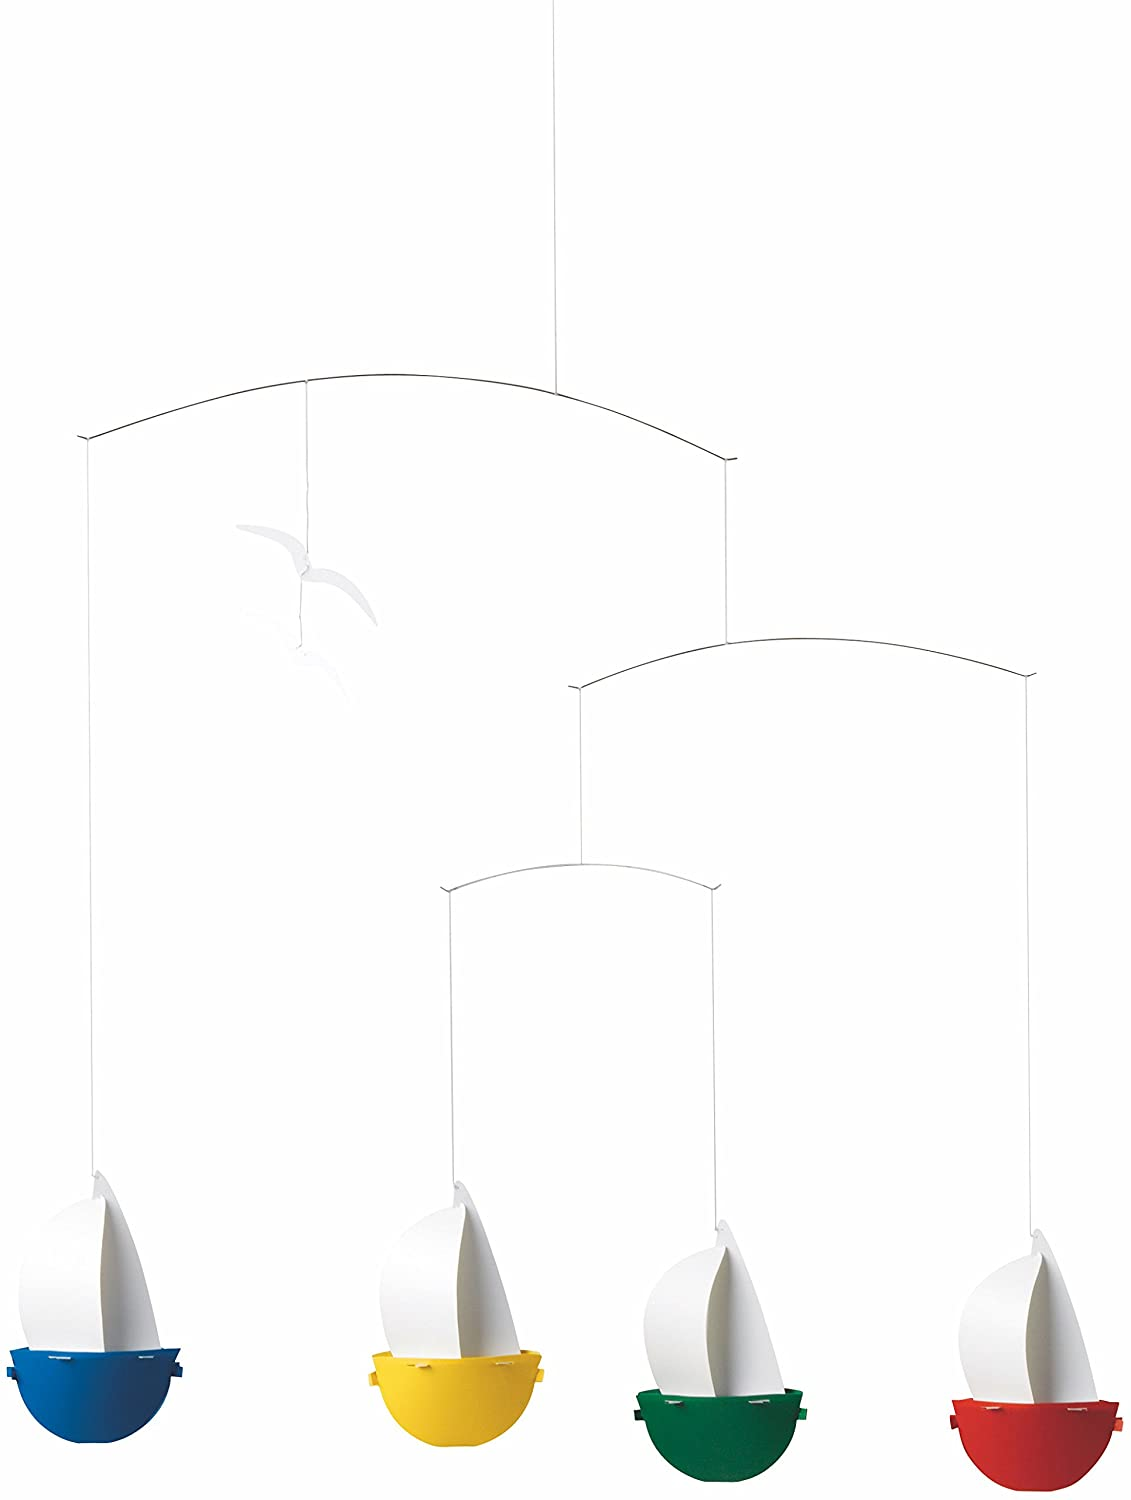 Sailfun Hanging Nursery Mobile - 24 Inches Plastic - Handmade in Denmark by Flensted